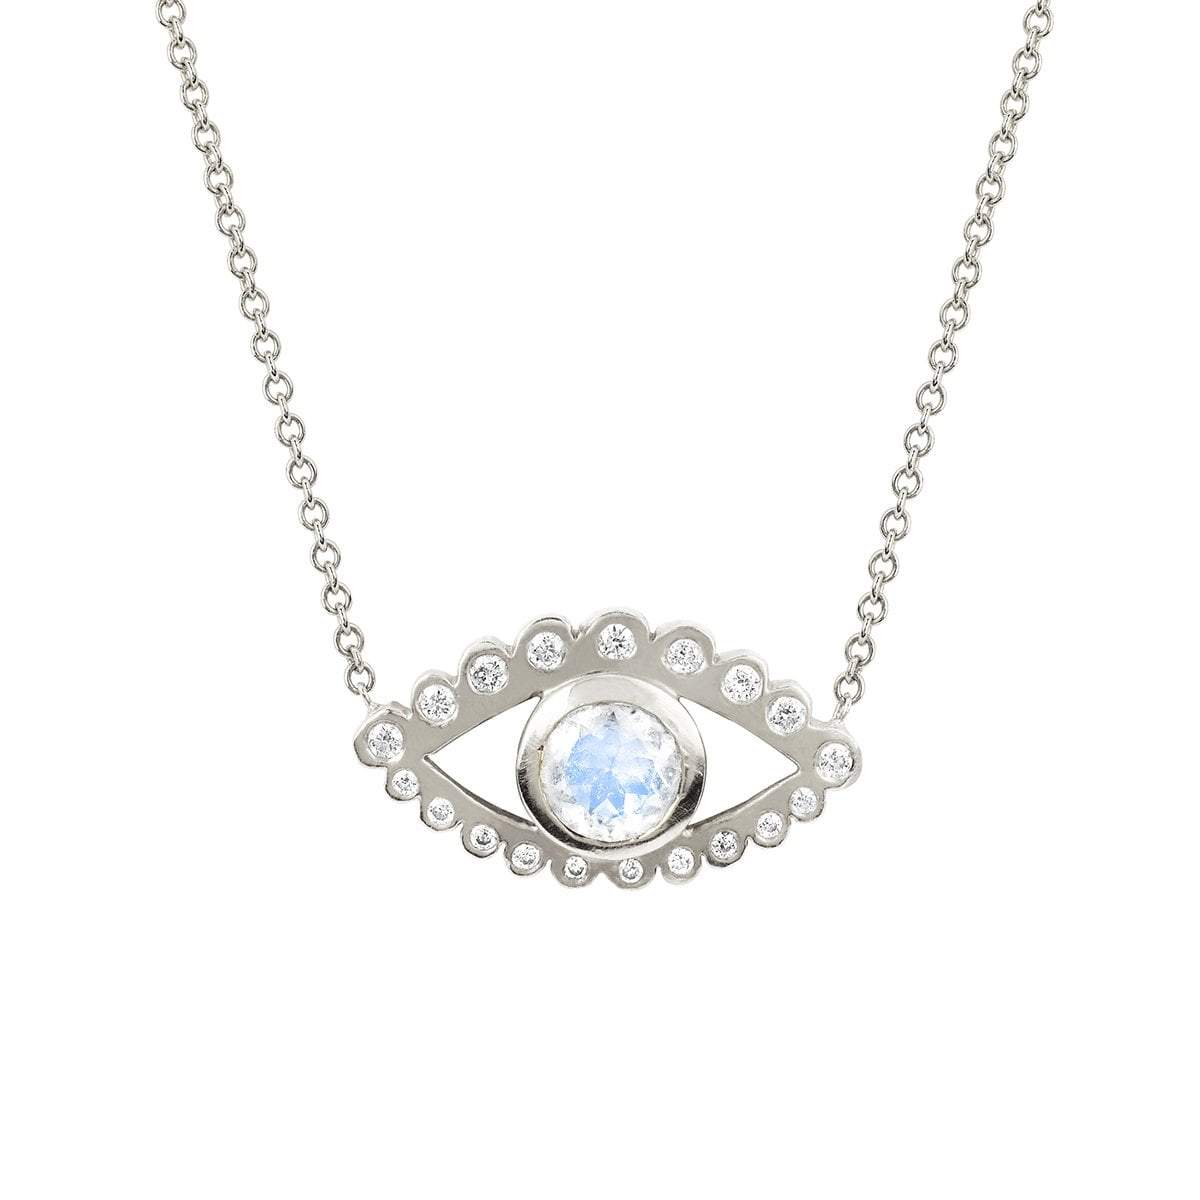 Third Eye Moonstone and Diamond Necklace